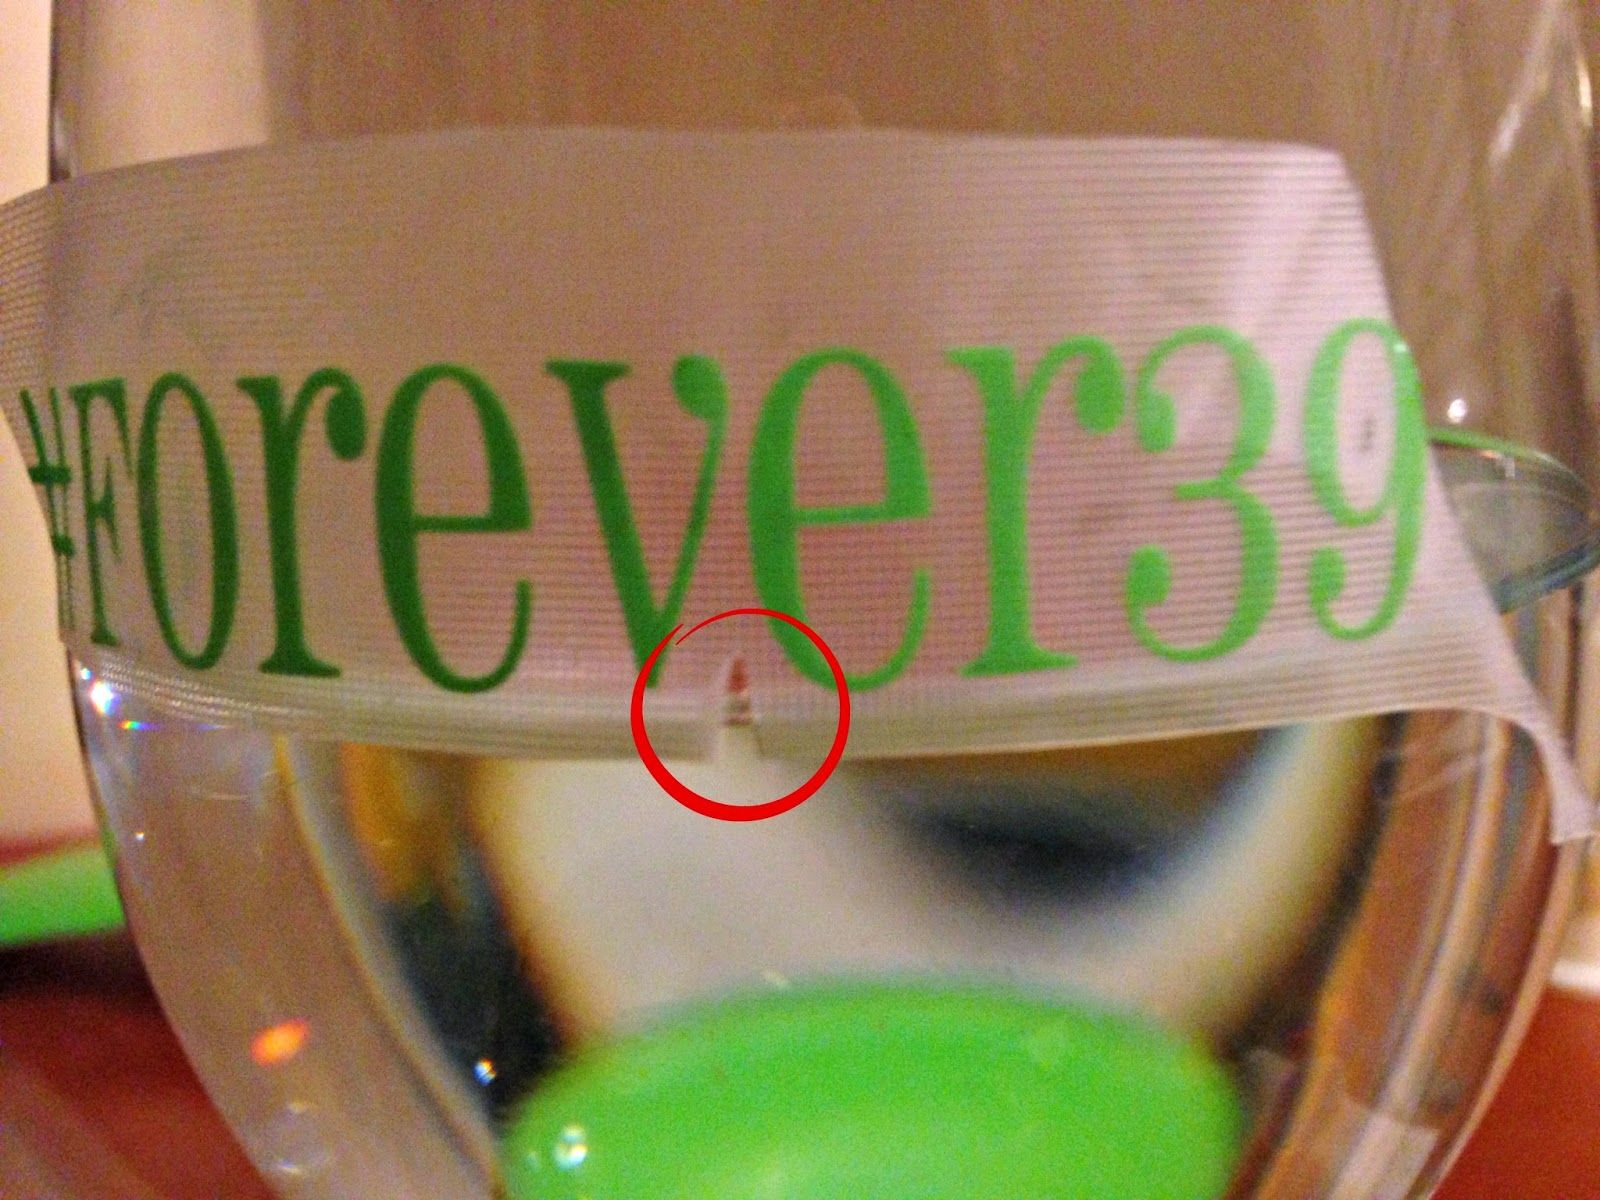 Putting Vinyl On Wine Glasses 7 Tips For Success Diy